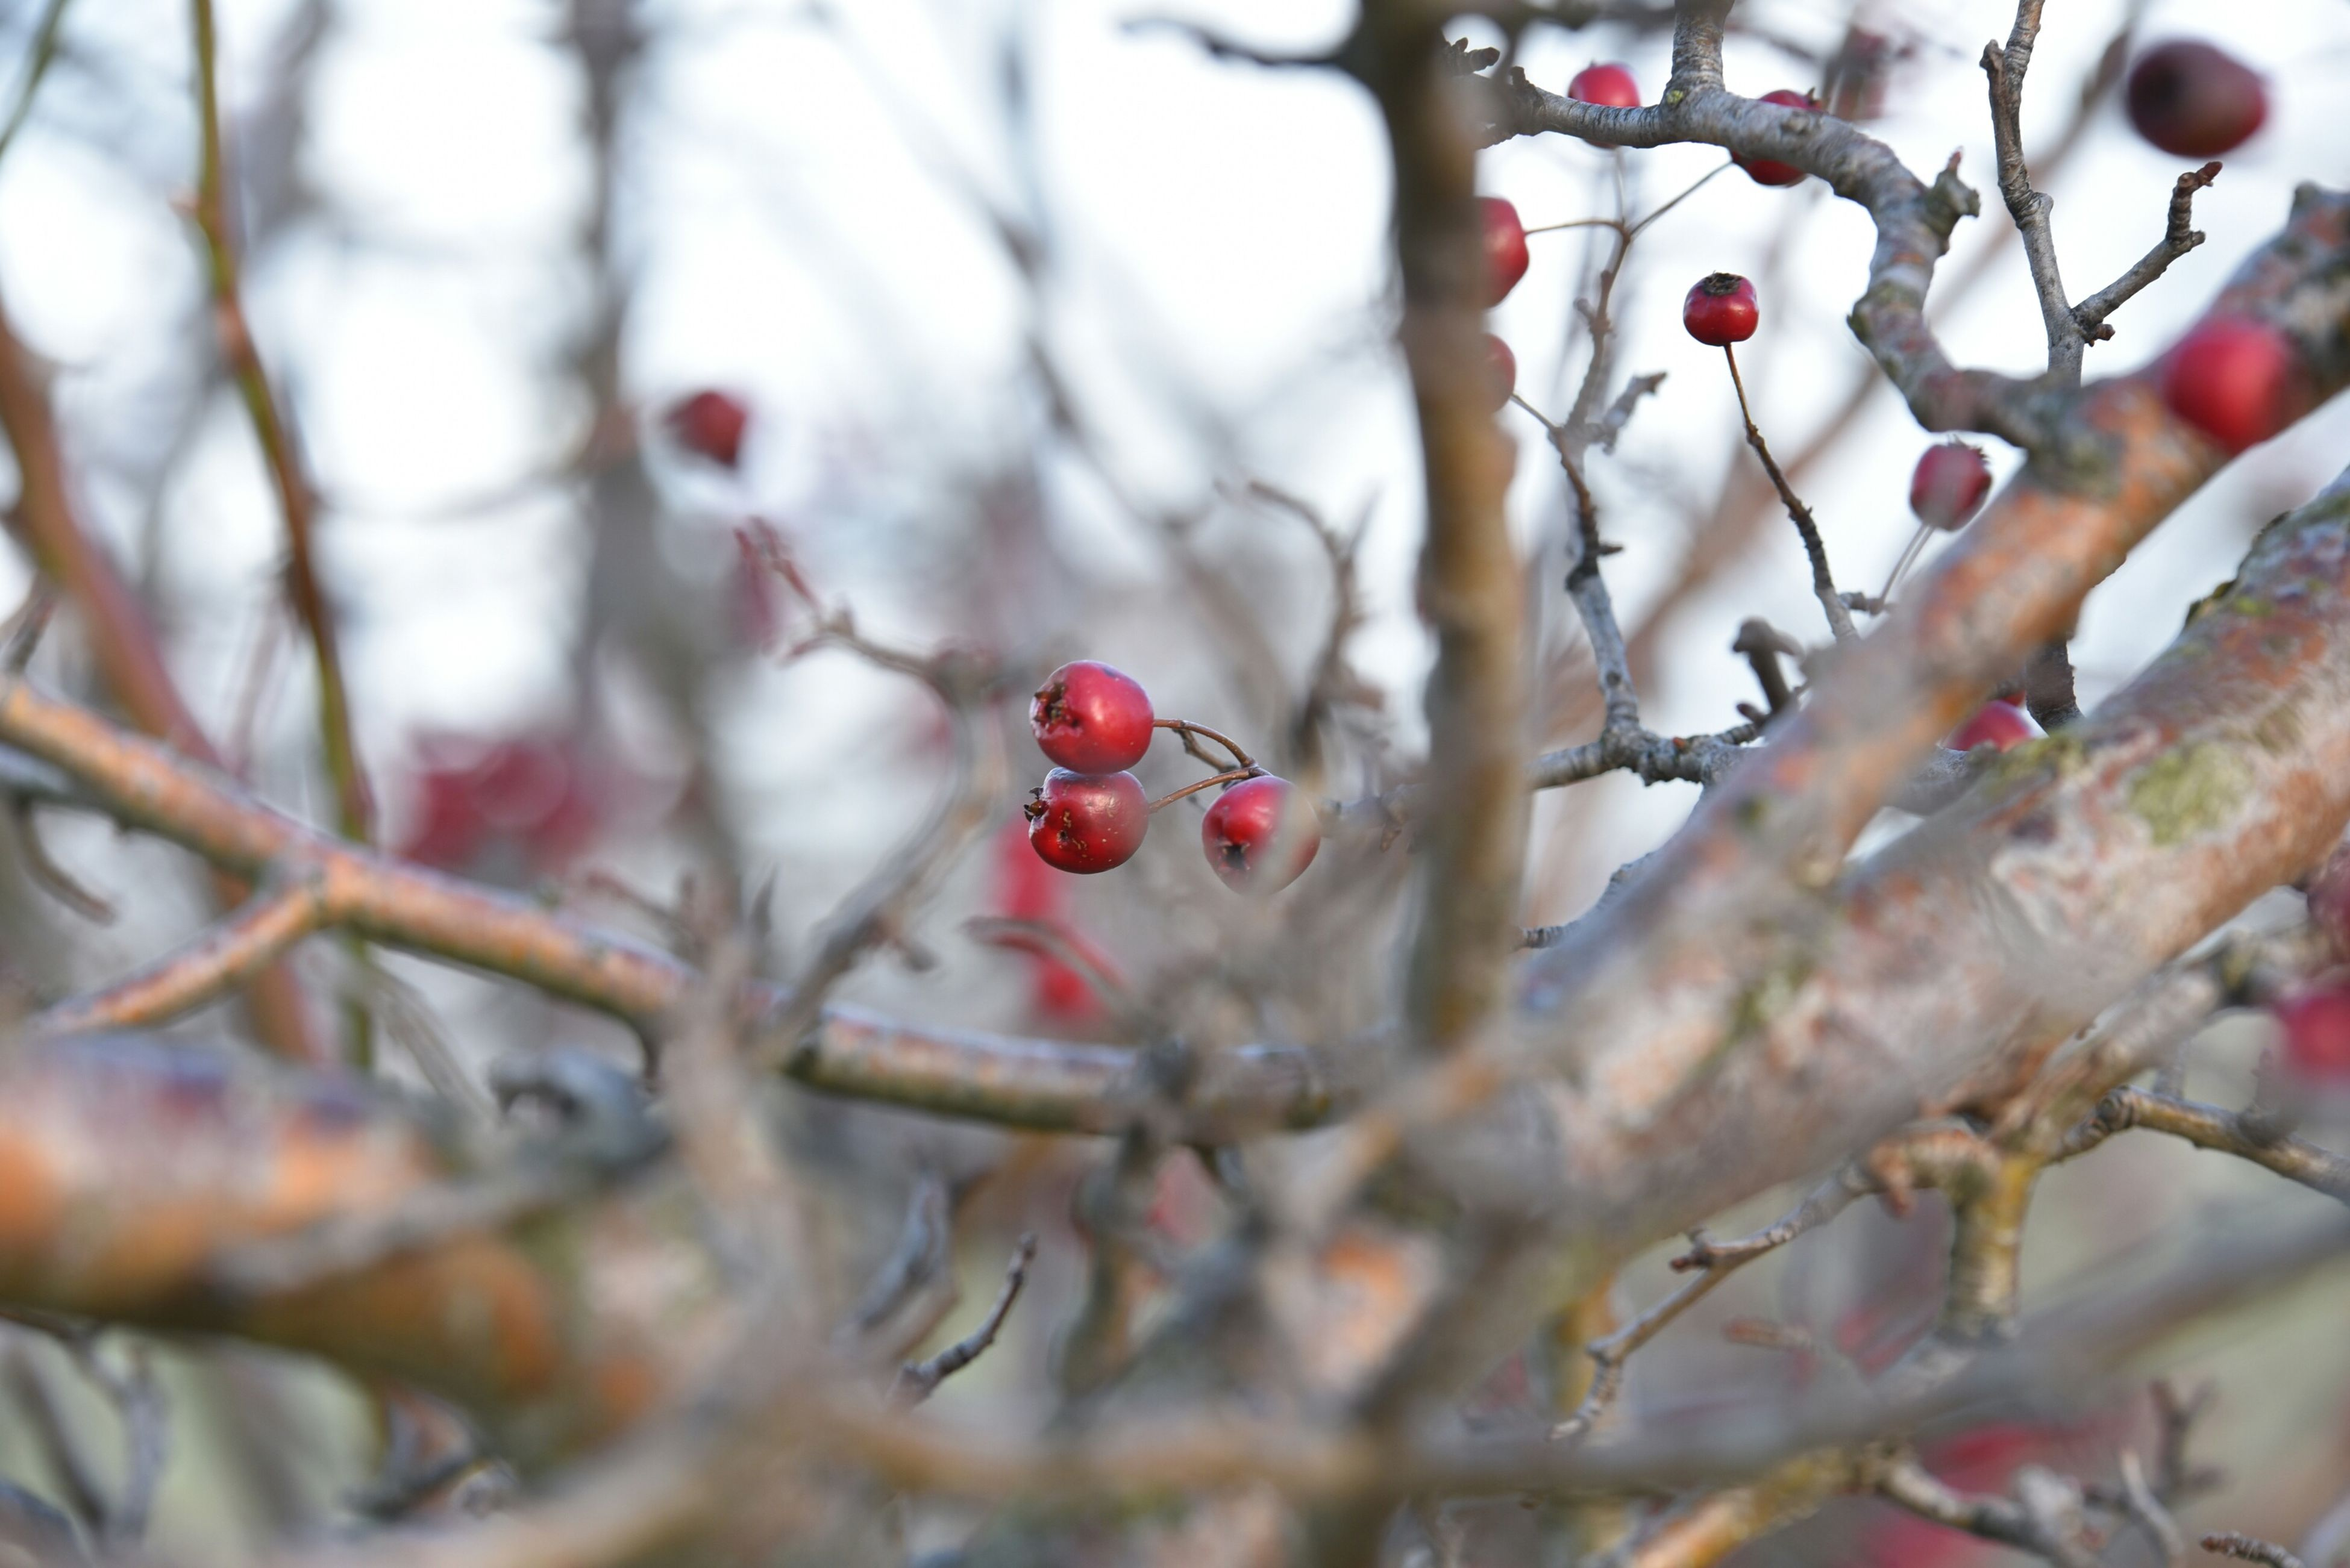 branch, fruit, red, focus on foreground, tree, close-up, berry fruit, twig, berry, nature, food and drink, growth, selective focus, freshness, food, cherry, day, outdoors, beauty in nature, hanging